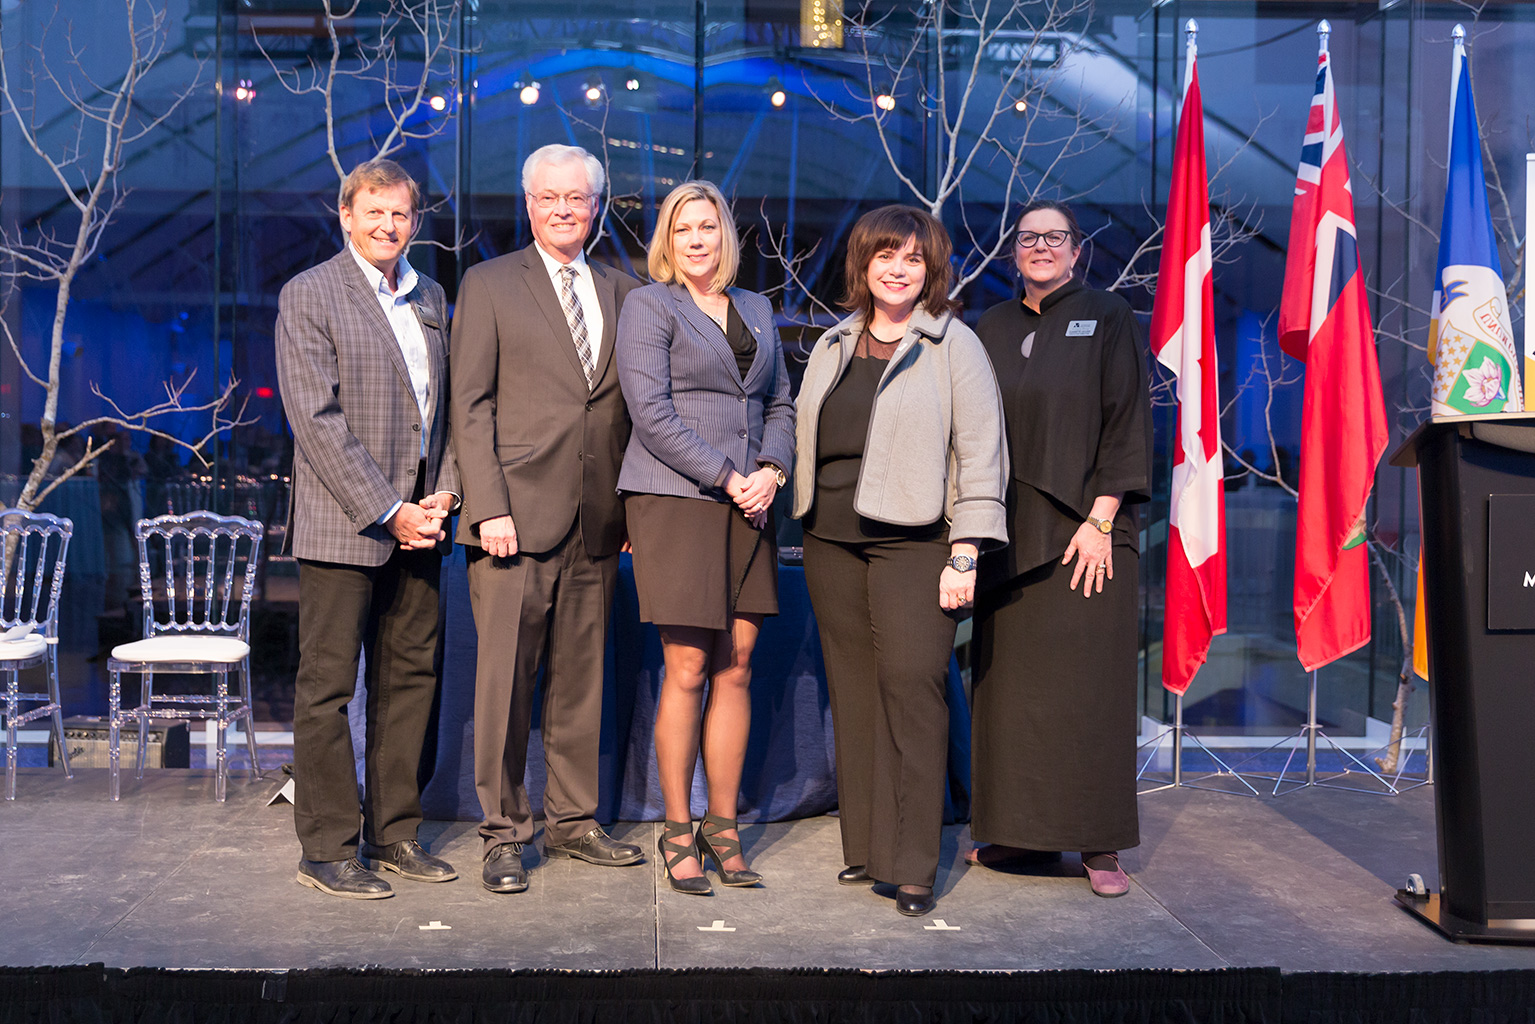 Jeoff Chipman, Chair of the Capital & Endowment Campaign (far left) and Claudette Leclerc (far right) with project funders (l to r): Rick Frost, CEO, The Winnipeg Foundation; The Honourable Rochelle Squires, Minister of Sport, Culture and Heritage; Brigitte Gibson, Regional Director General - Prairies & Northern Region,  Department Canadian Heritage.